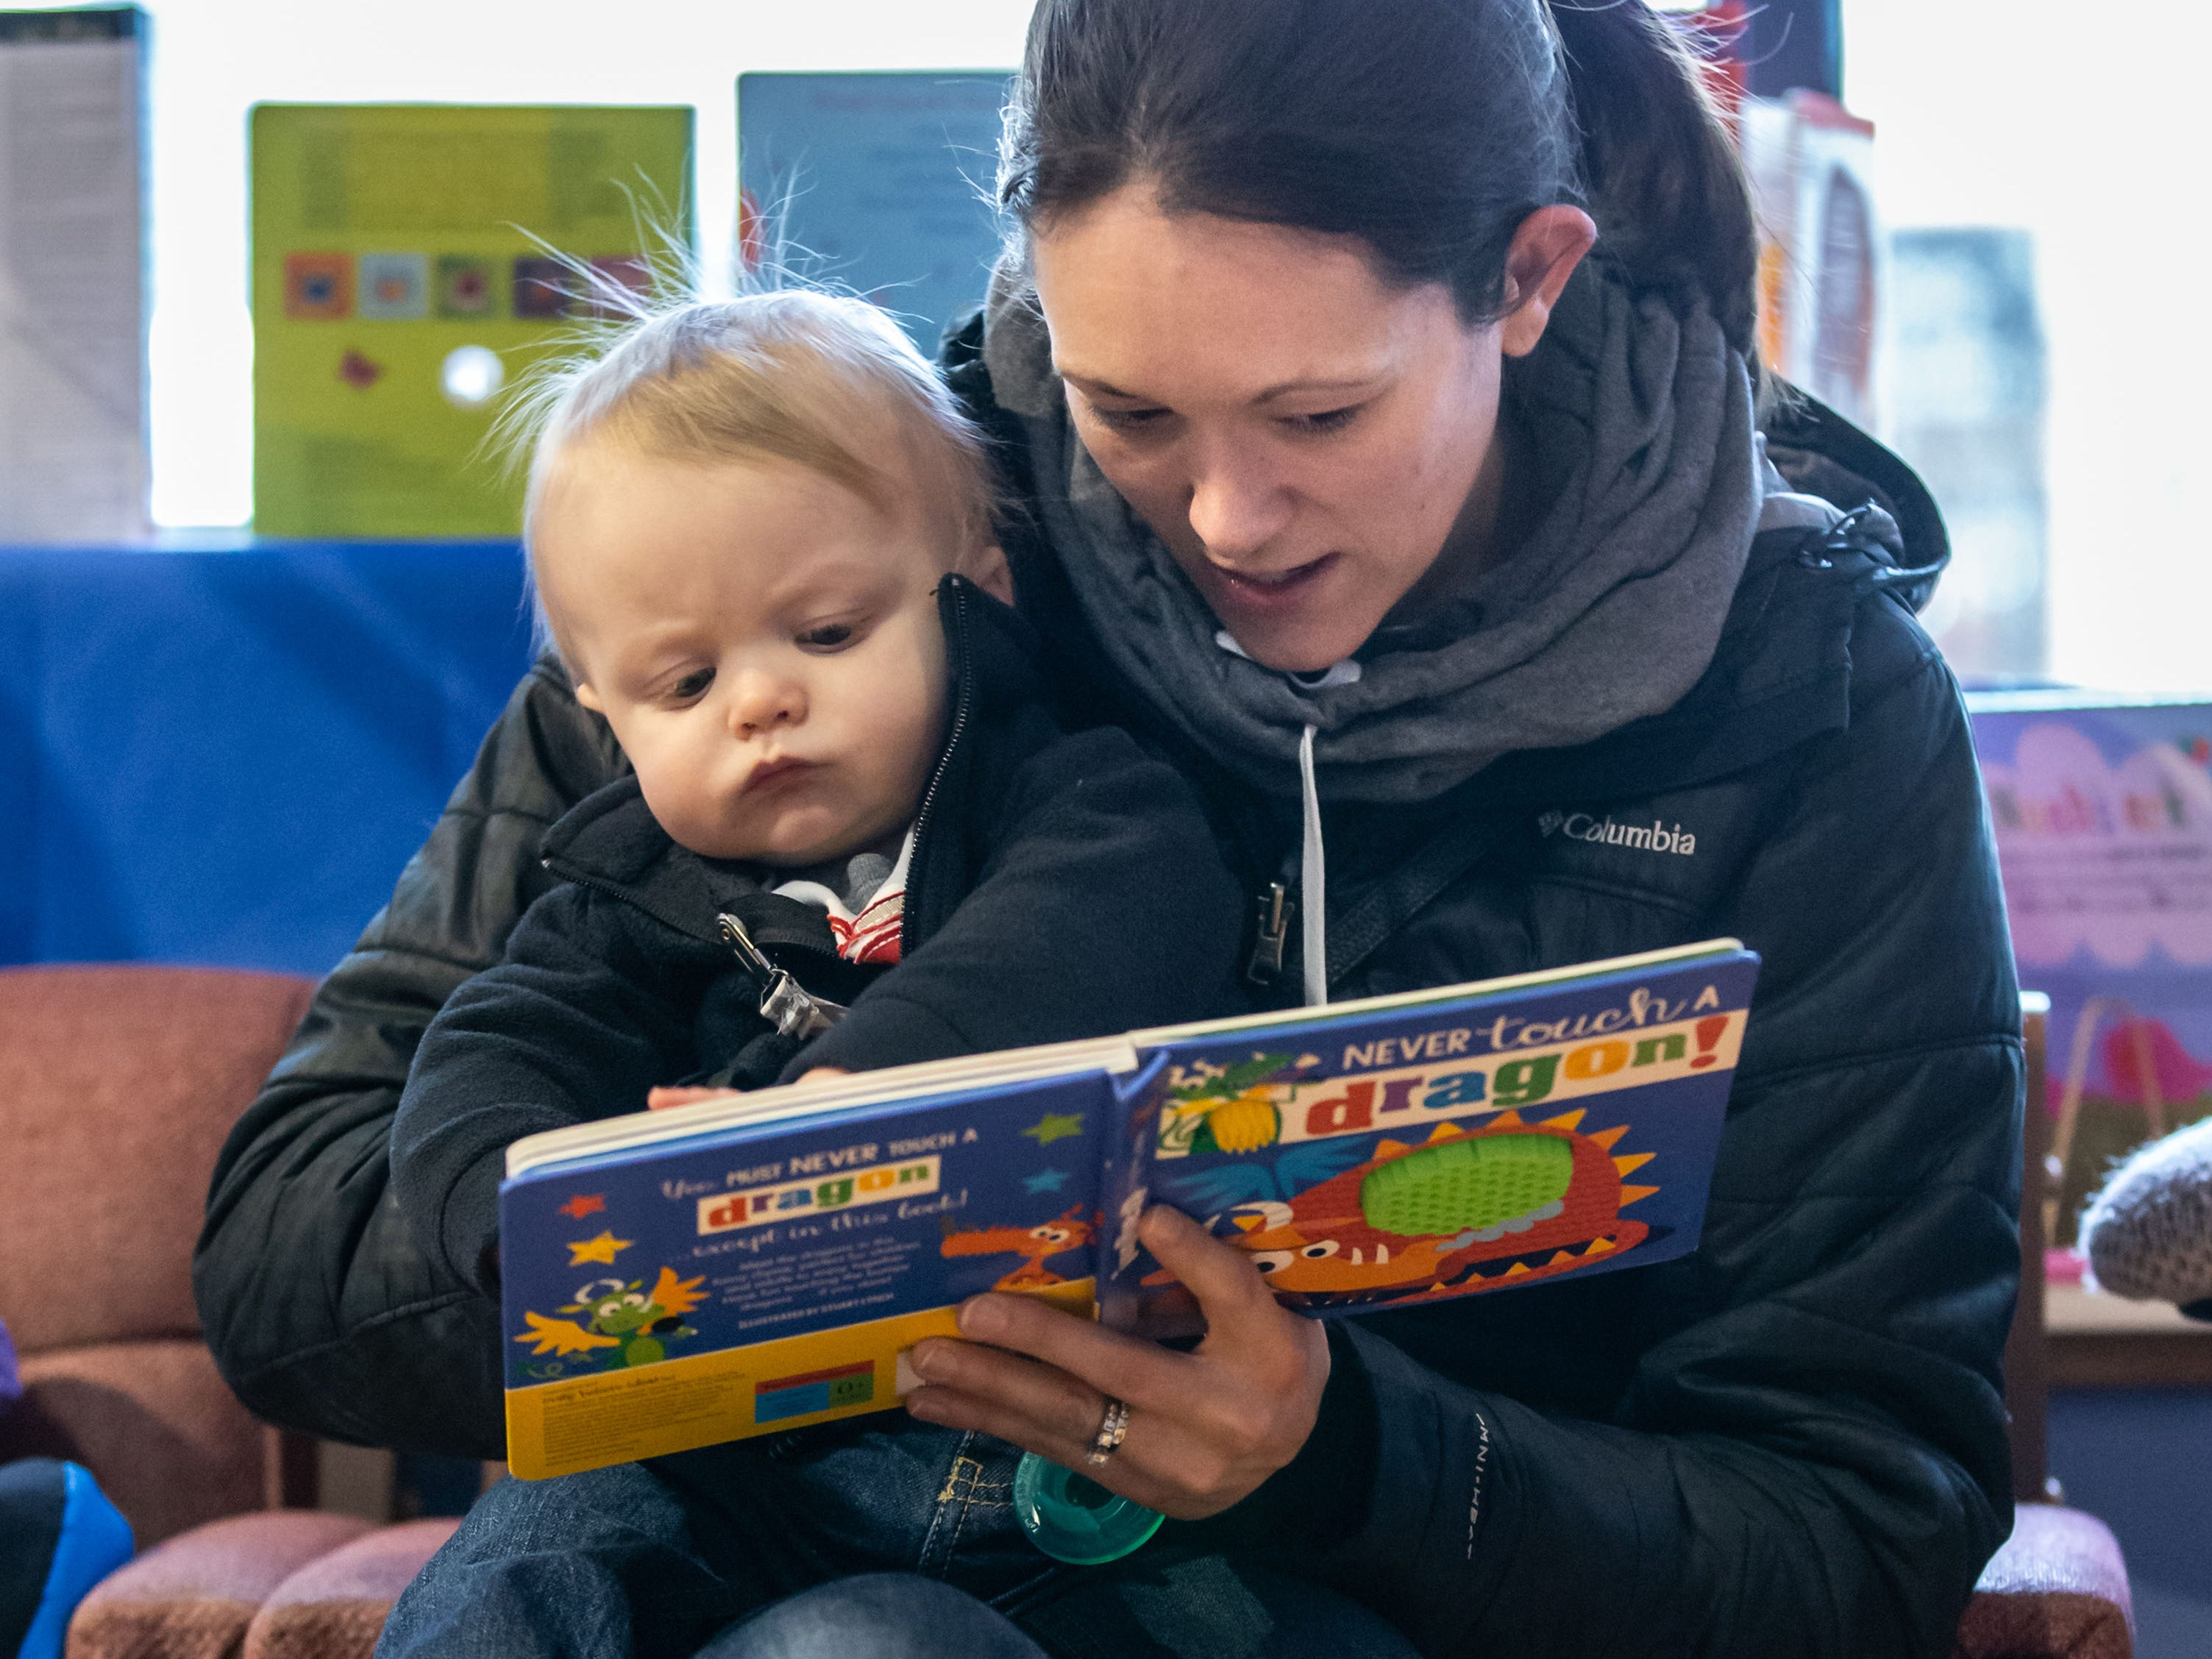 Sarah Detmer of Waukesha reads to her ten-month-old son Kellen at Martha Merrell's Books & Toys during the Birthday Bash Downtown Waukesha Art Crawl on Saturday, March 2, 2019. The event celebrated the birthday of Dr Seuss with a special birthday party complete with cake, coloring pages and more at Martha Merrell's Books.